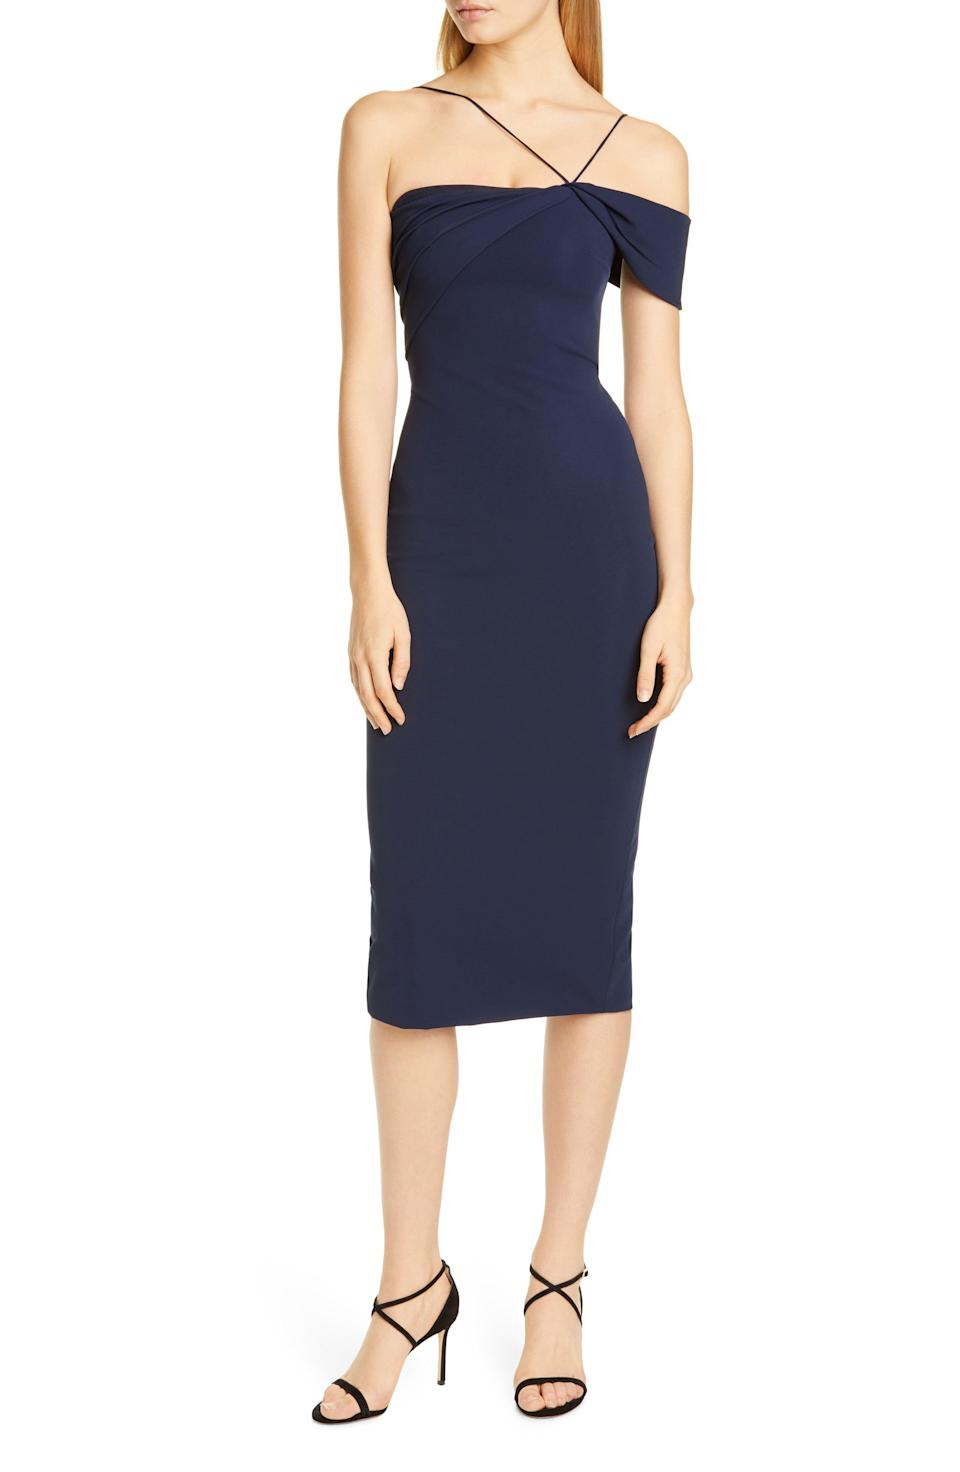 """<p><strong>CUSHNIE</strong></p><p>nordstrom.com</p><p><a href=""""https://go.redirectingat.com?id=74968X1596630&url=https%3A%2F%2Fshop.nordstrom.com%2Fs%2Fcushnie-asymmetrical-pencil-dress%2F5494709&sref=https%3A%2F%2Fwww.marieclaire.com%2Ffashion%2Fg32905504%2Fnordstrom-sale-june-2020%2F"""" rel=""""nofollow noopener"""" target=""""_blank"""" data-ylk=""""slk:SHOP IT"""" class=""""link rapid-noclick-resp"""">SHOP IT </a></p><p><del>$1,595</del><strong><br>$717.74</strong></p><p>Just because wedding season has been (unofficially) cancelled, doesn't mean you can't pick up something fancy. You can buy this versatile number from Cushnie on sale now, and have a brand-new dress to wear later.</p>"""